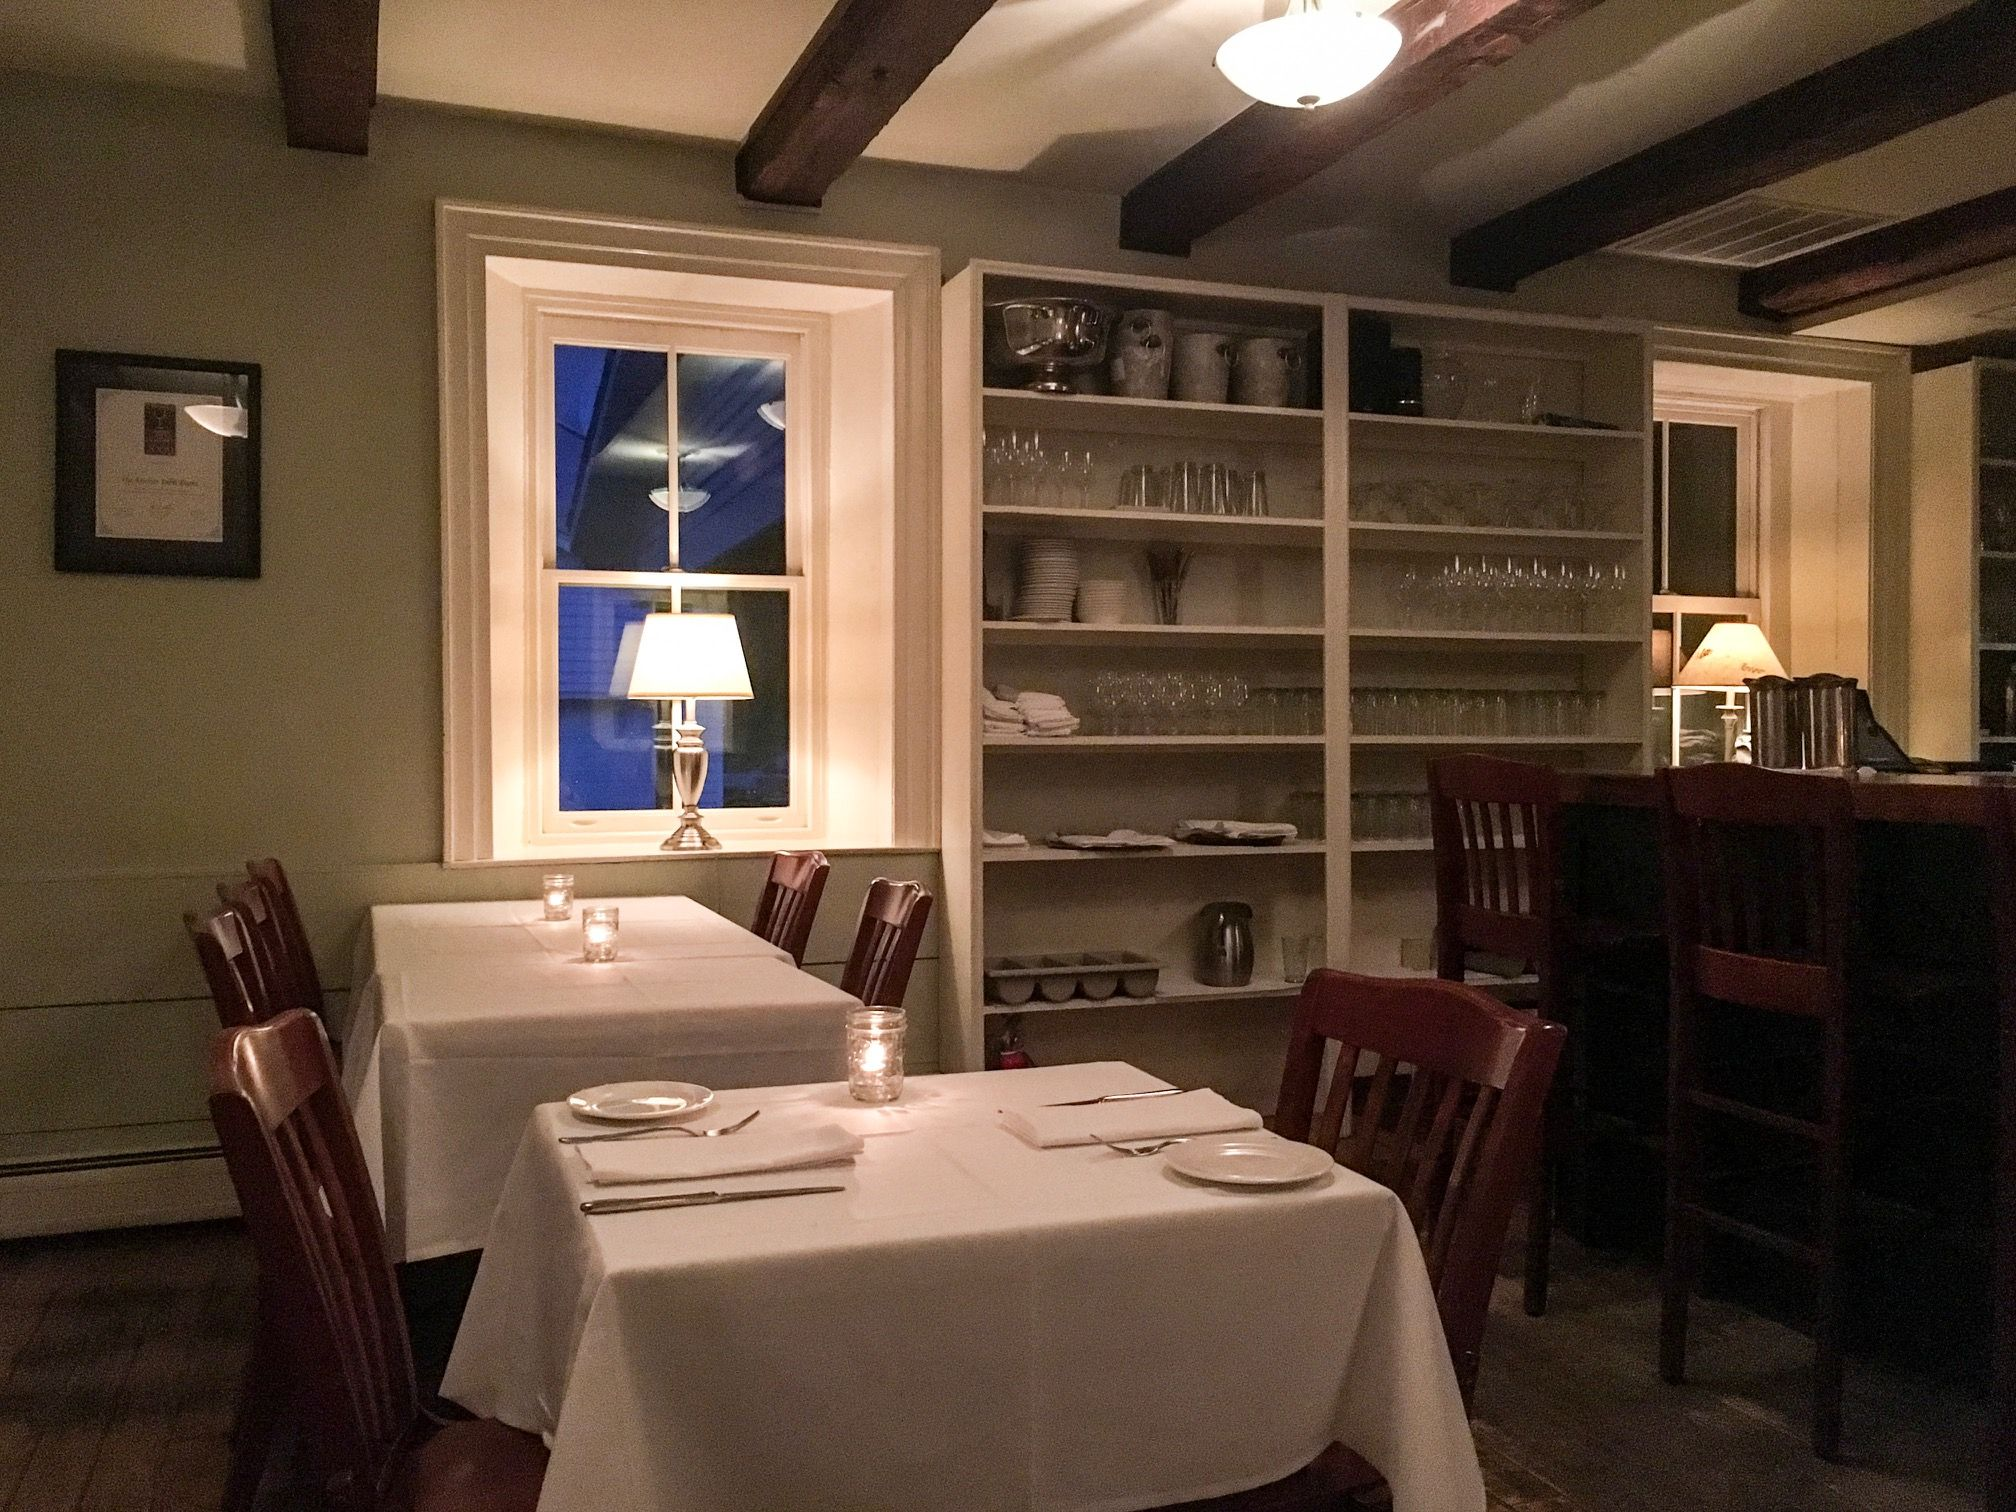 The kitchen table bistro vermont vermont and restaurants top notch dining at the kitchen table bistro vermont watchthetrailerfo